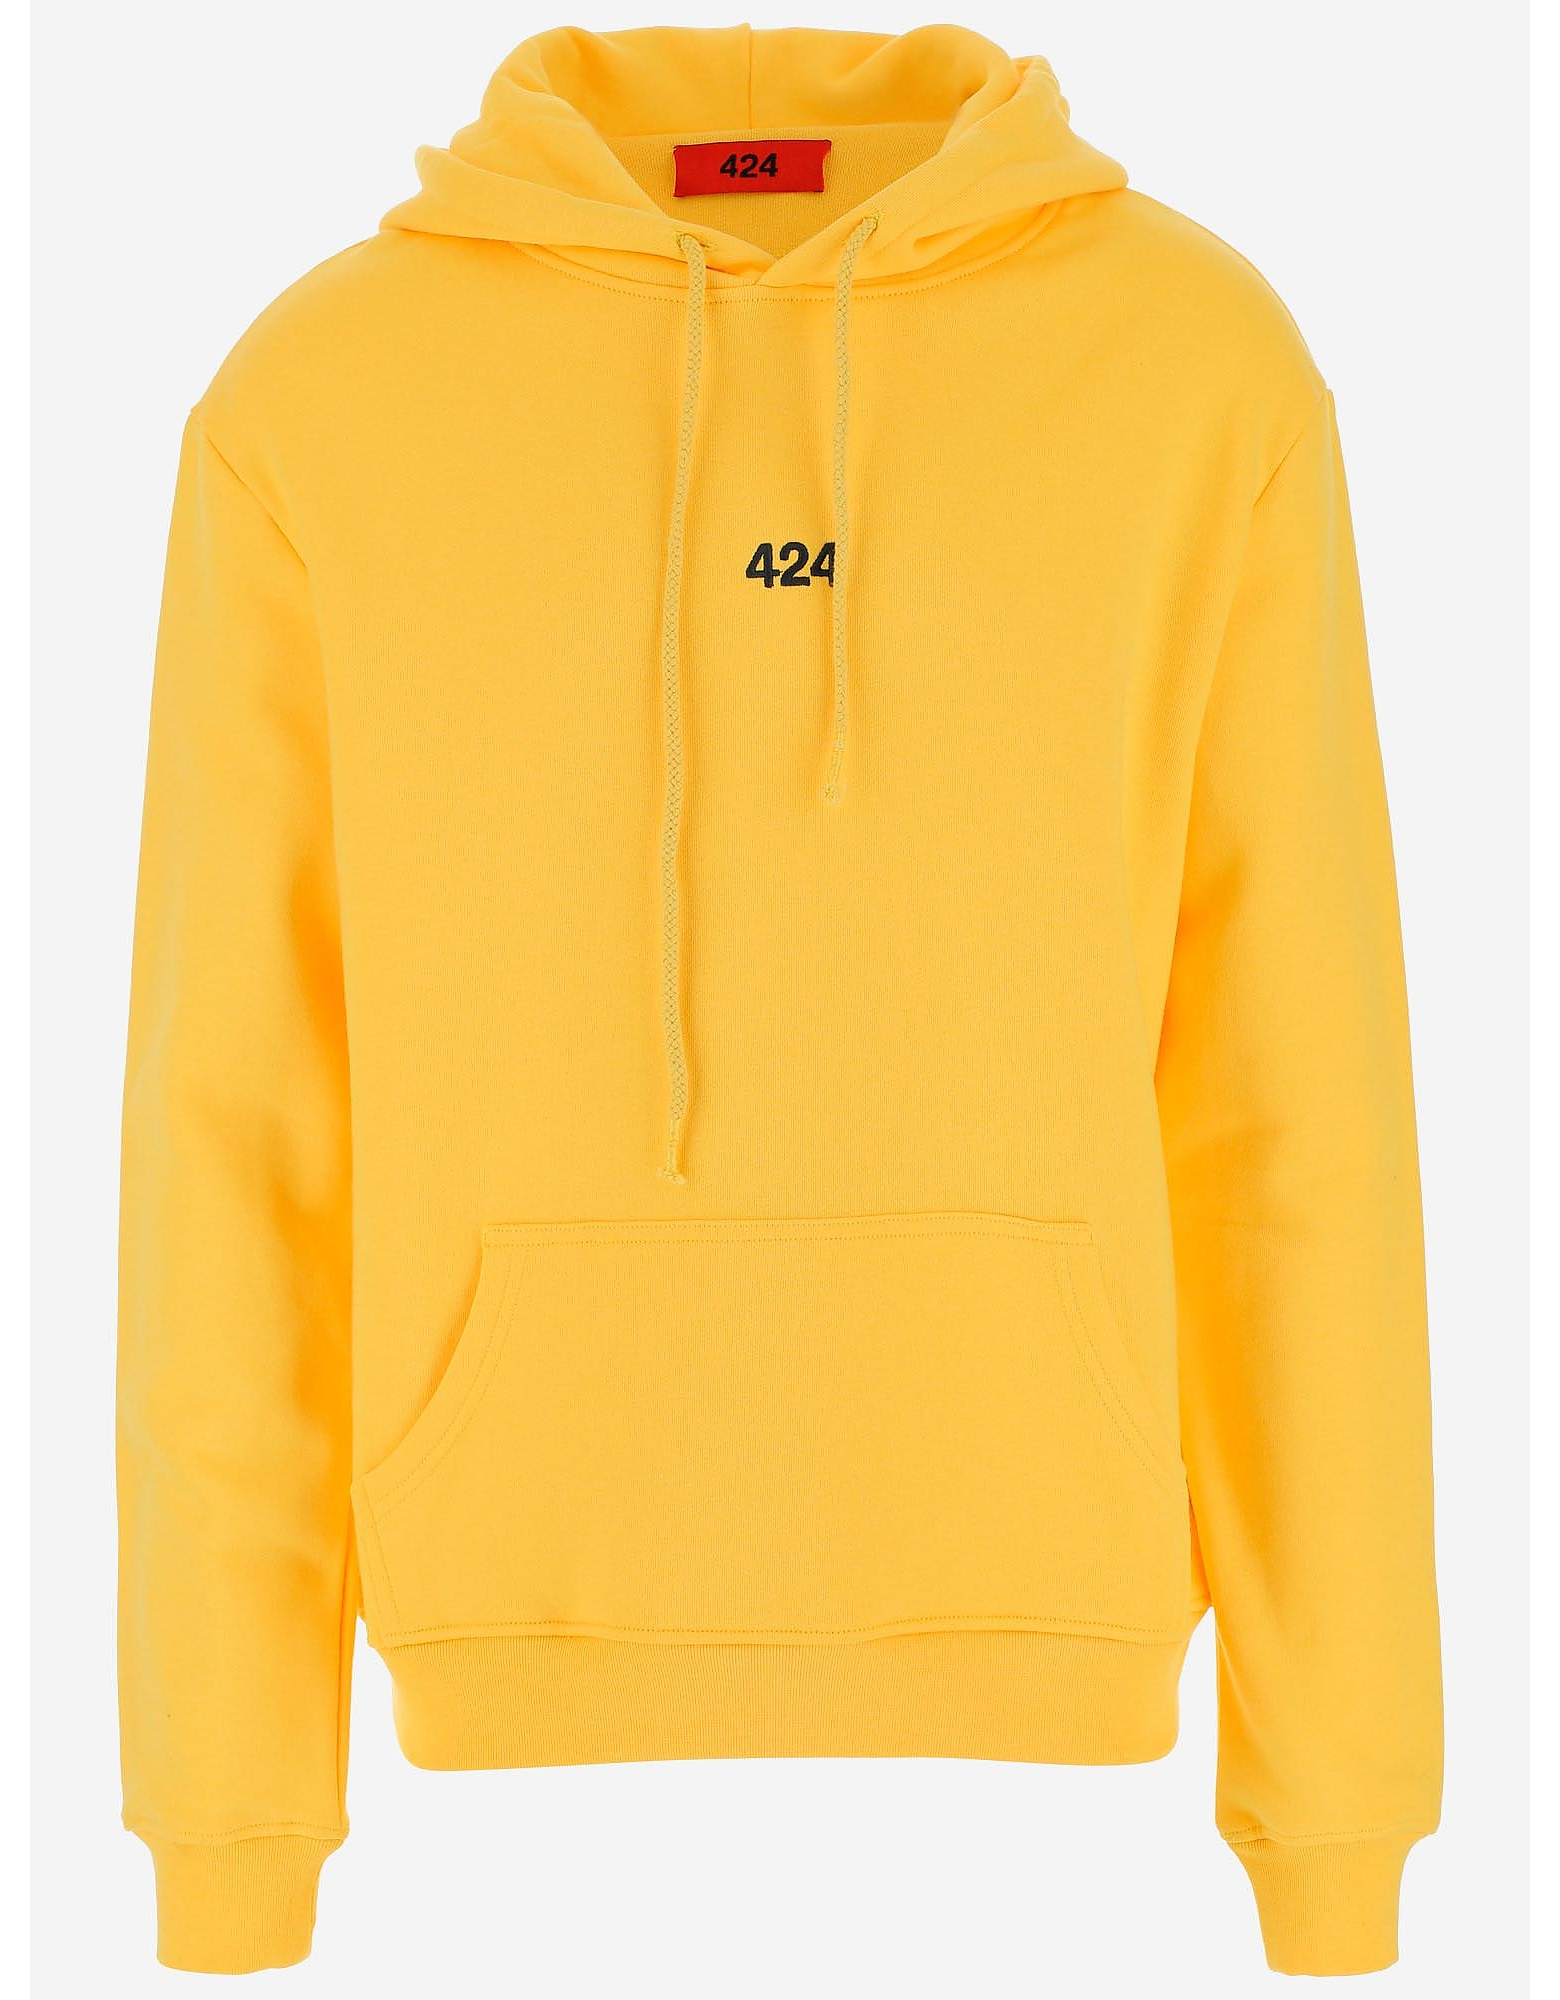 424 Designer Sweatshirts, 424 Sun Yellow Cotton Men's Hoodie